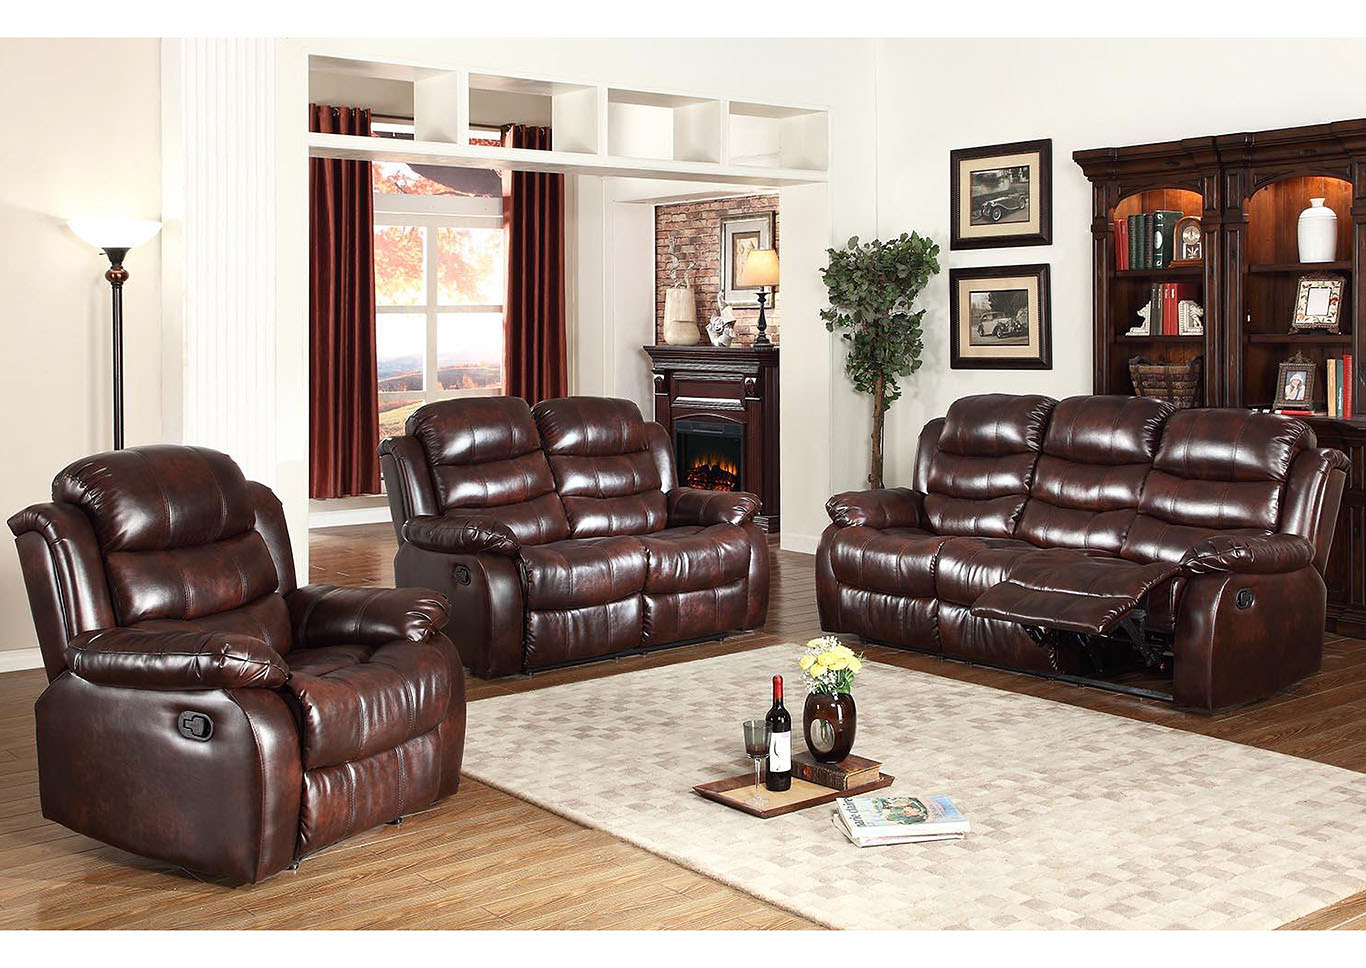 Deals More Furniture Philadelphia Pa Brown Leather Reclining